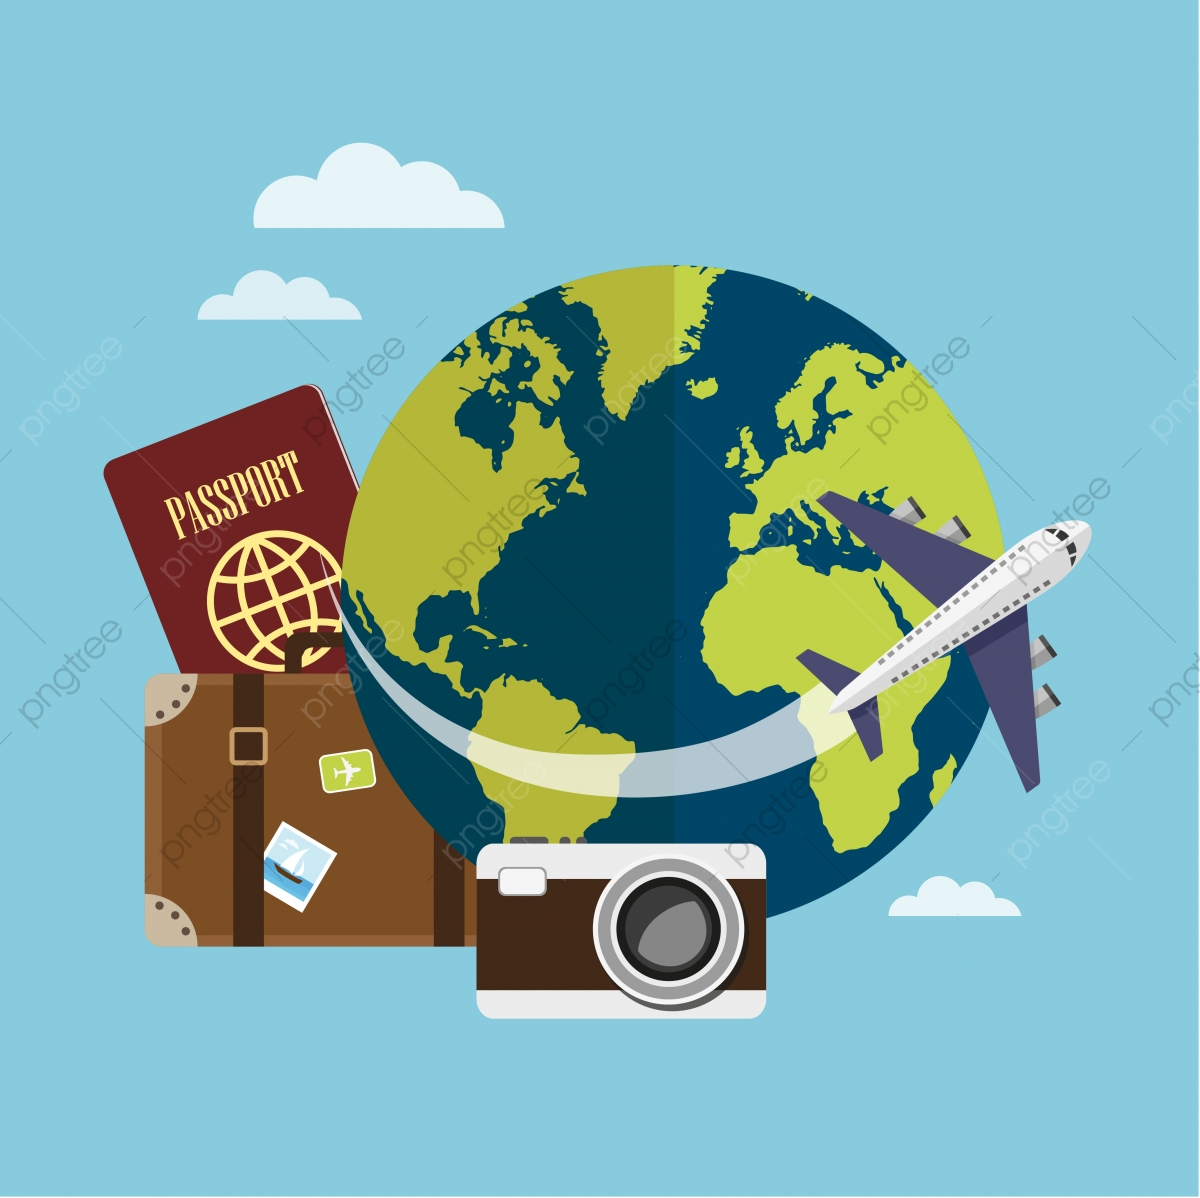 Traveling clipart travel plan. Around the world by